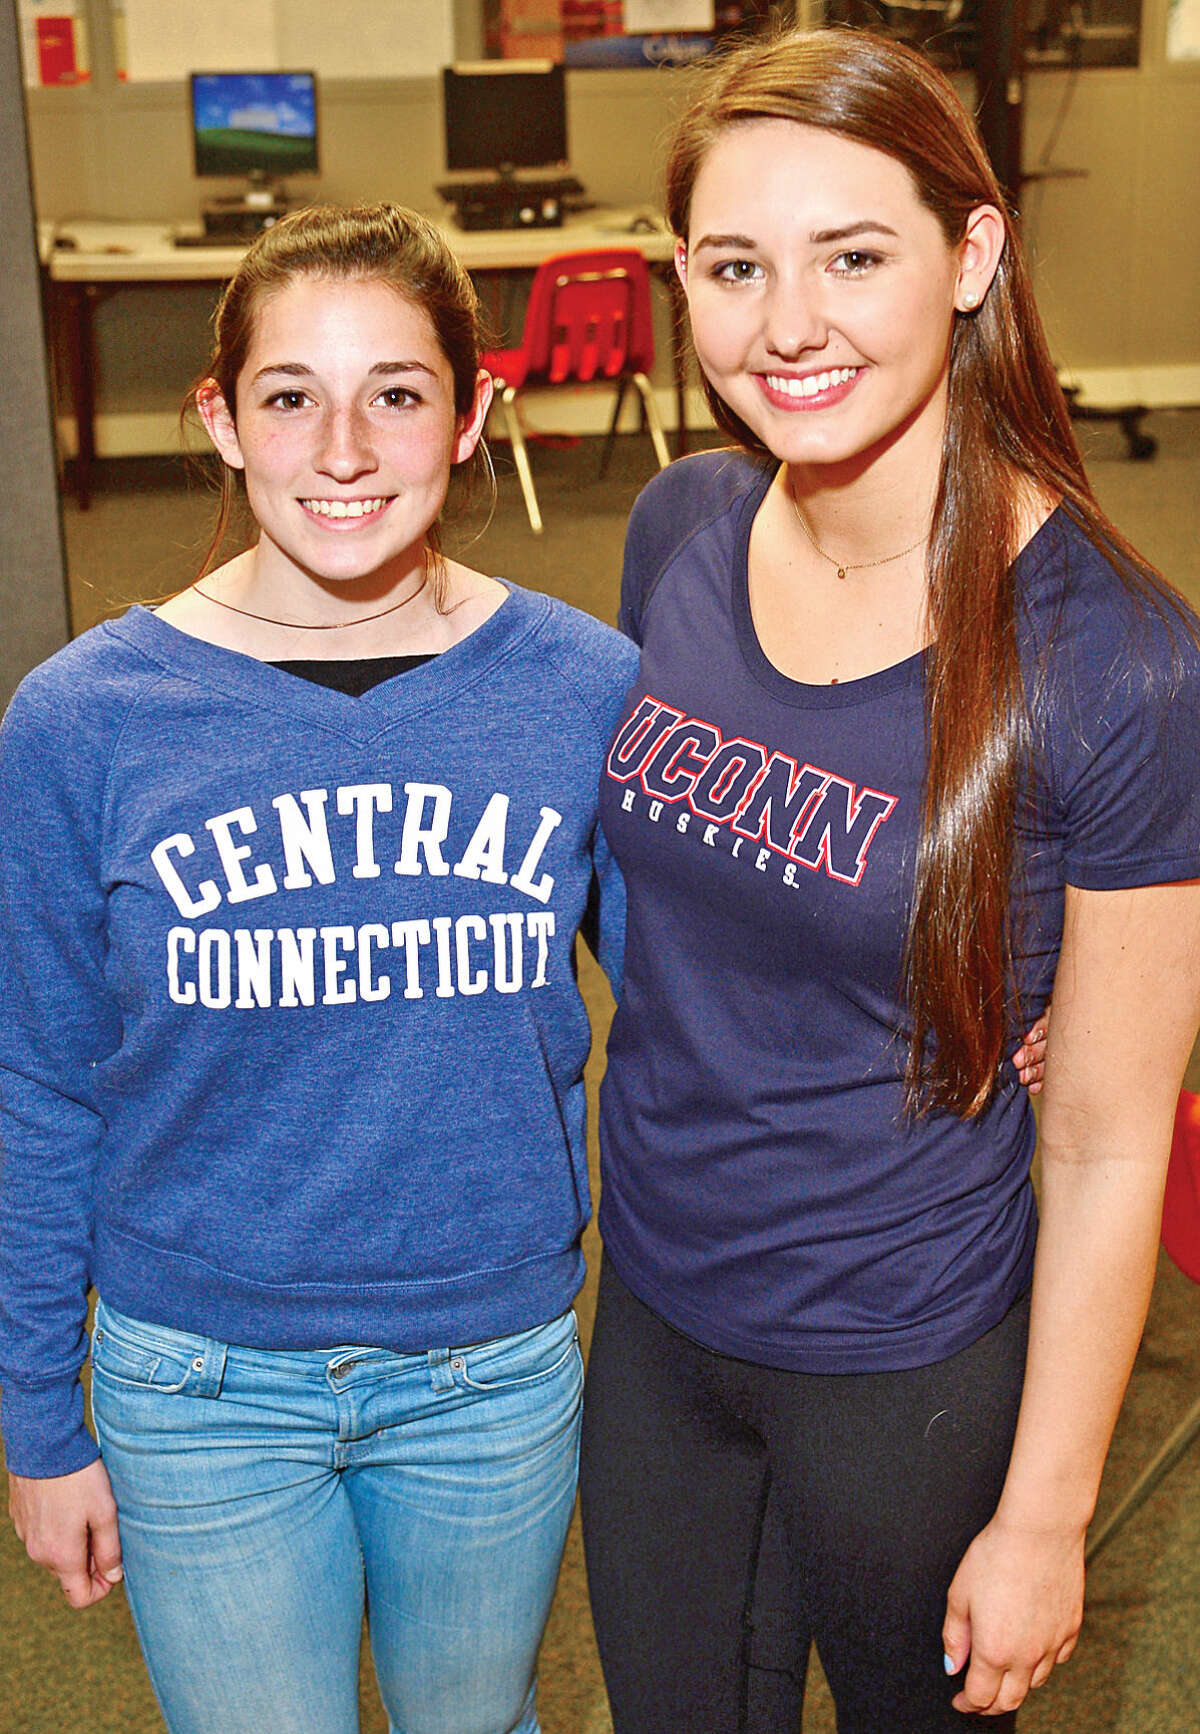 Norwalk's Sabrina Kruy, left, is going to play girls soccer at Central Connecticut State University and Katie Wargo is going to swim at UConn next season. (Hour photo/Erik Trautmann)